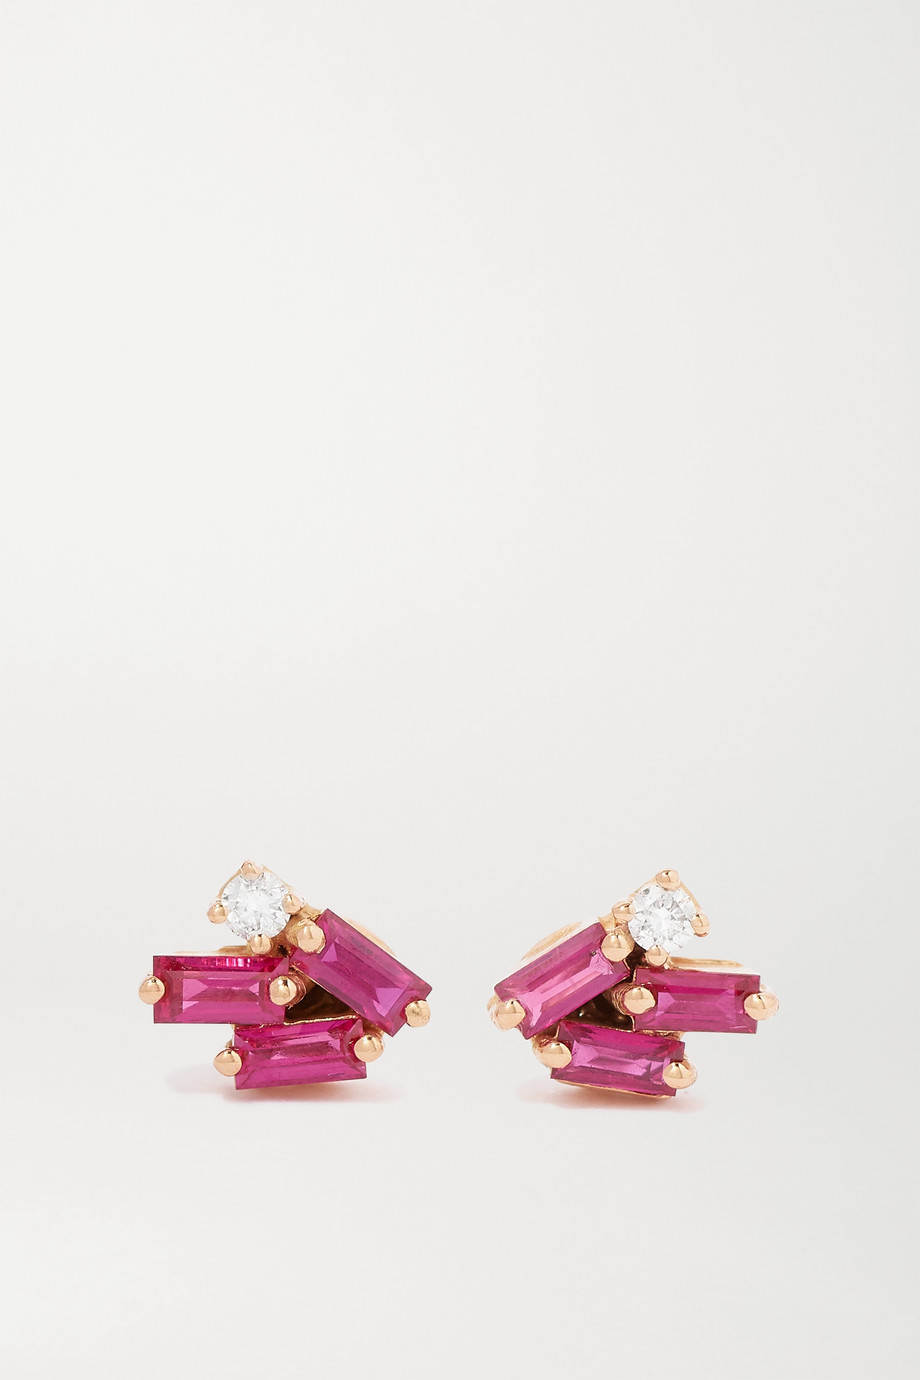 SUZANNE KALAN 18-karat rose gold, ruby and diamond earrings